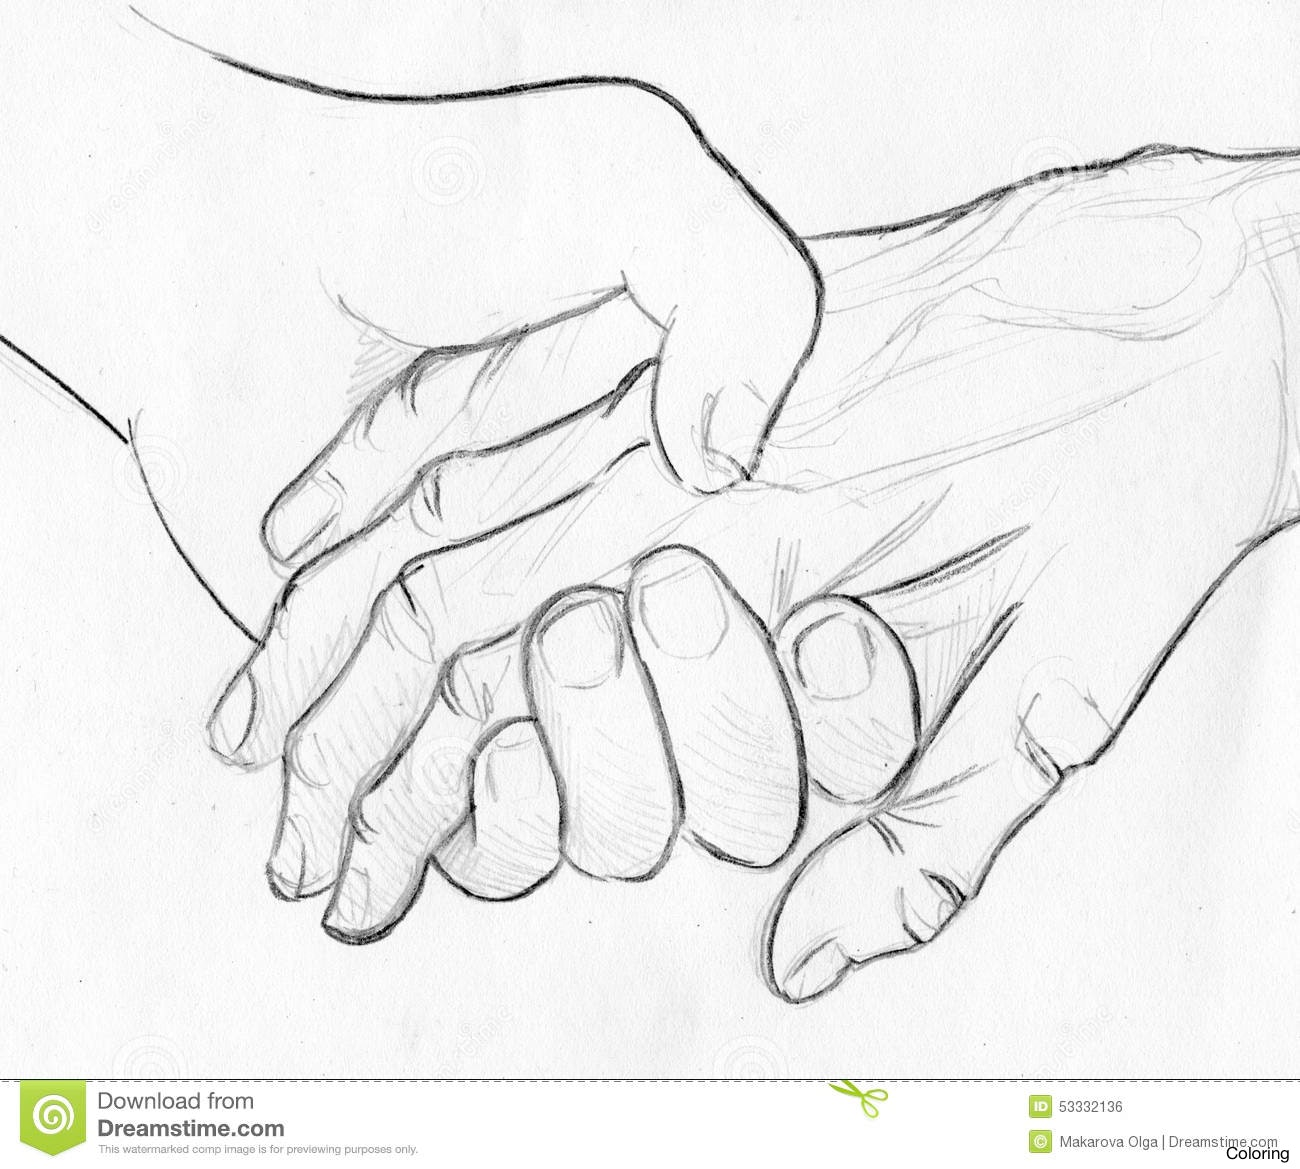 1300x1169 Pencil Drawings Of People Holding Hands Couples Live To Draw